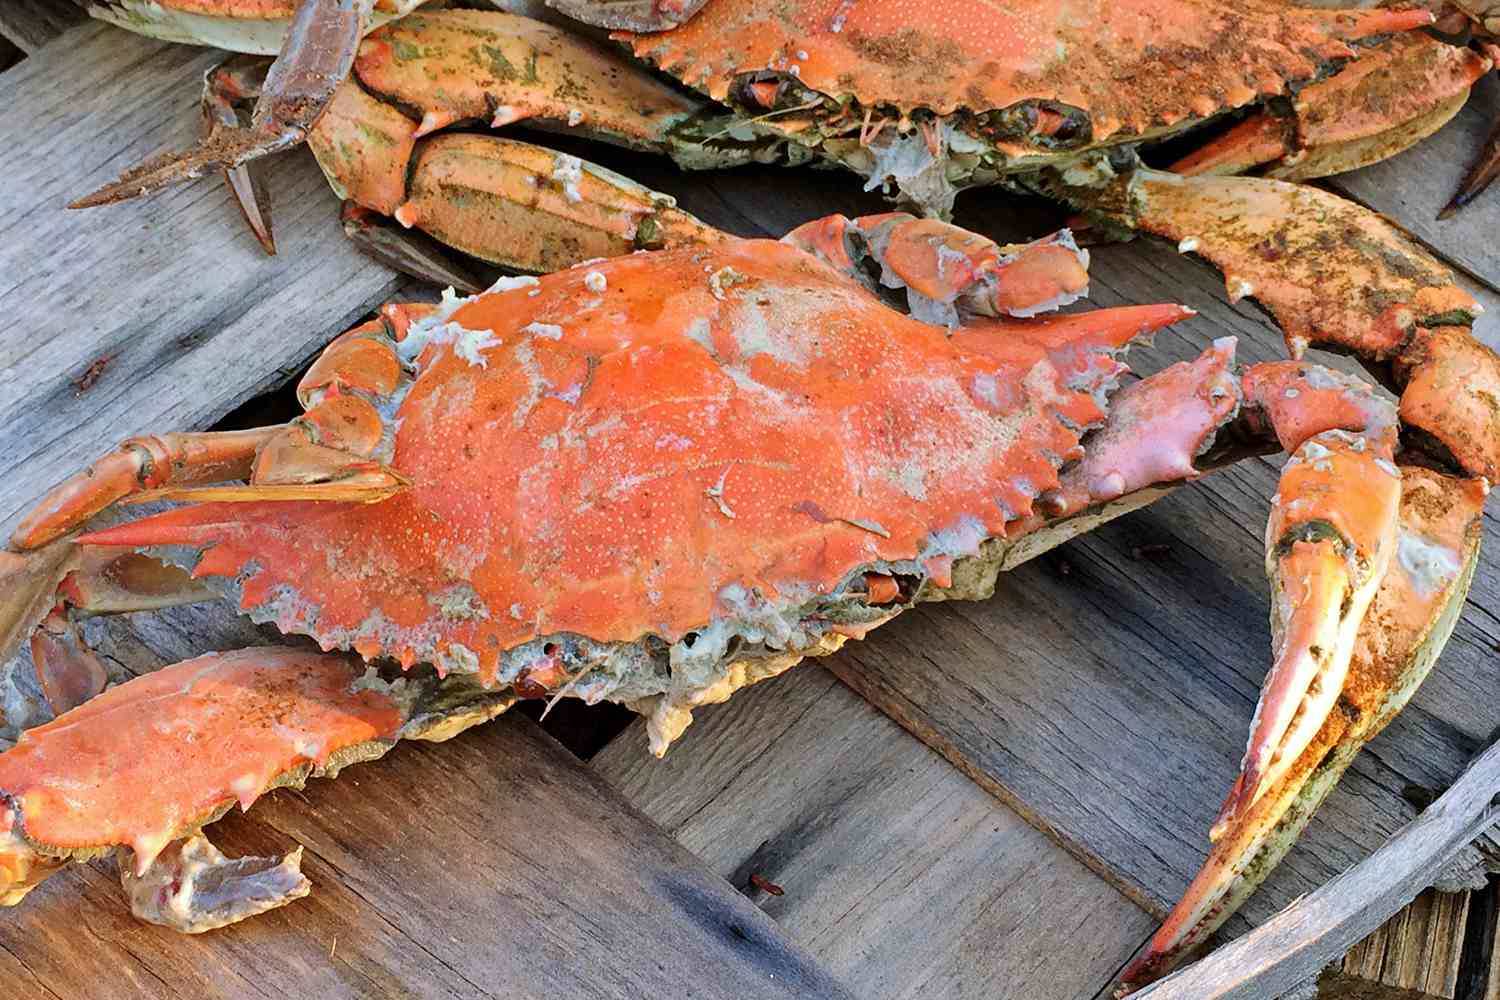 A steamed Maryland crab